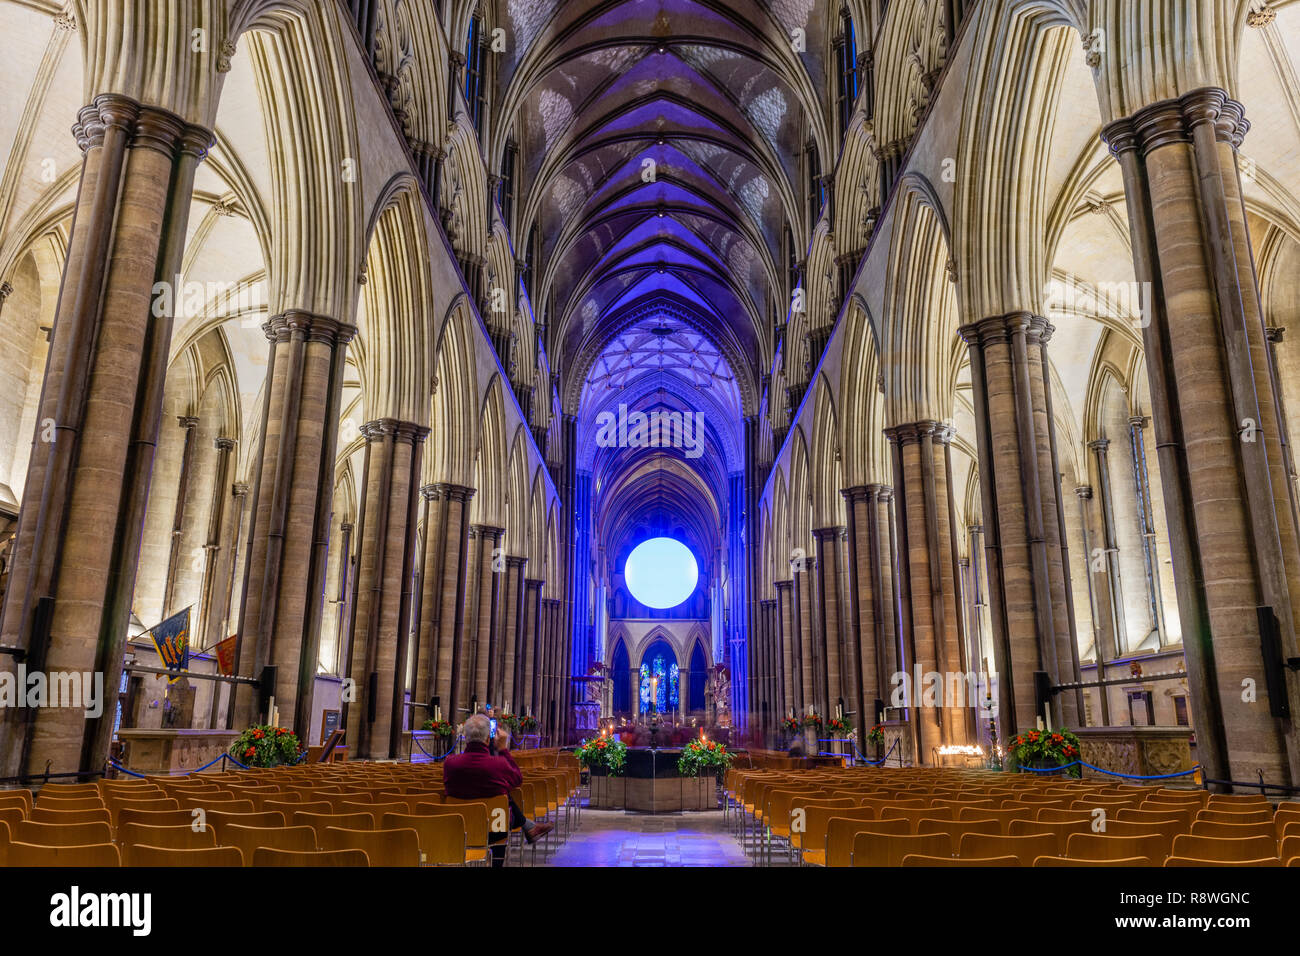 'The Light' art installation by Richard McLester inside Salisbury Cathedral as part of the 'From Darkness to Light art illuminations, England, UK - Stock Image